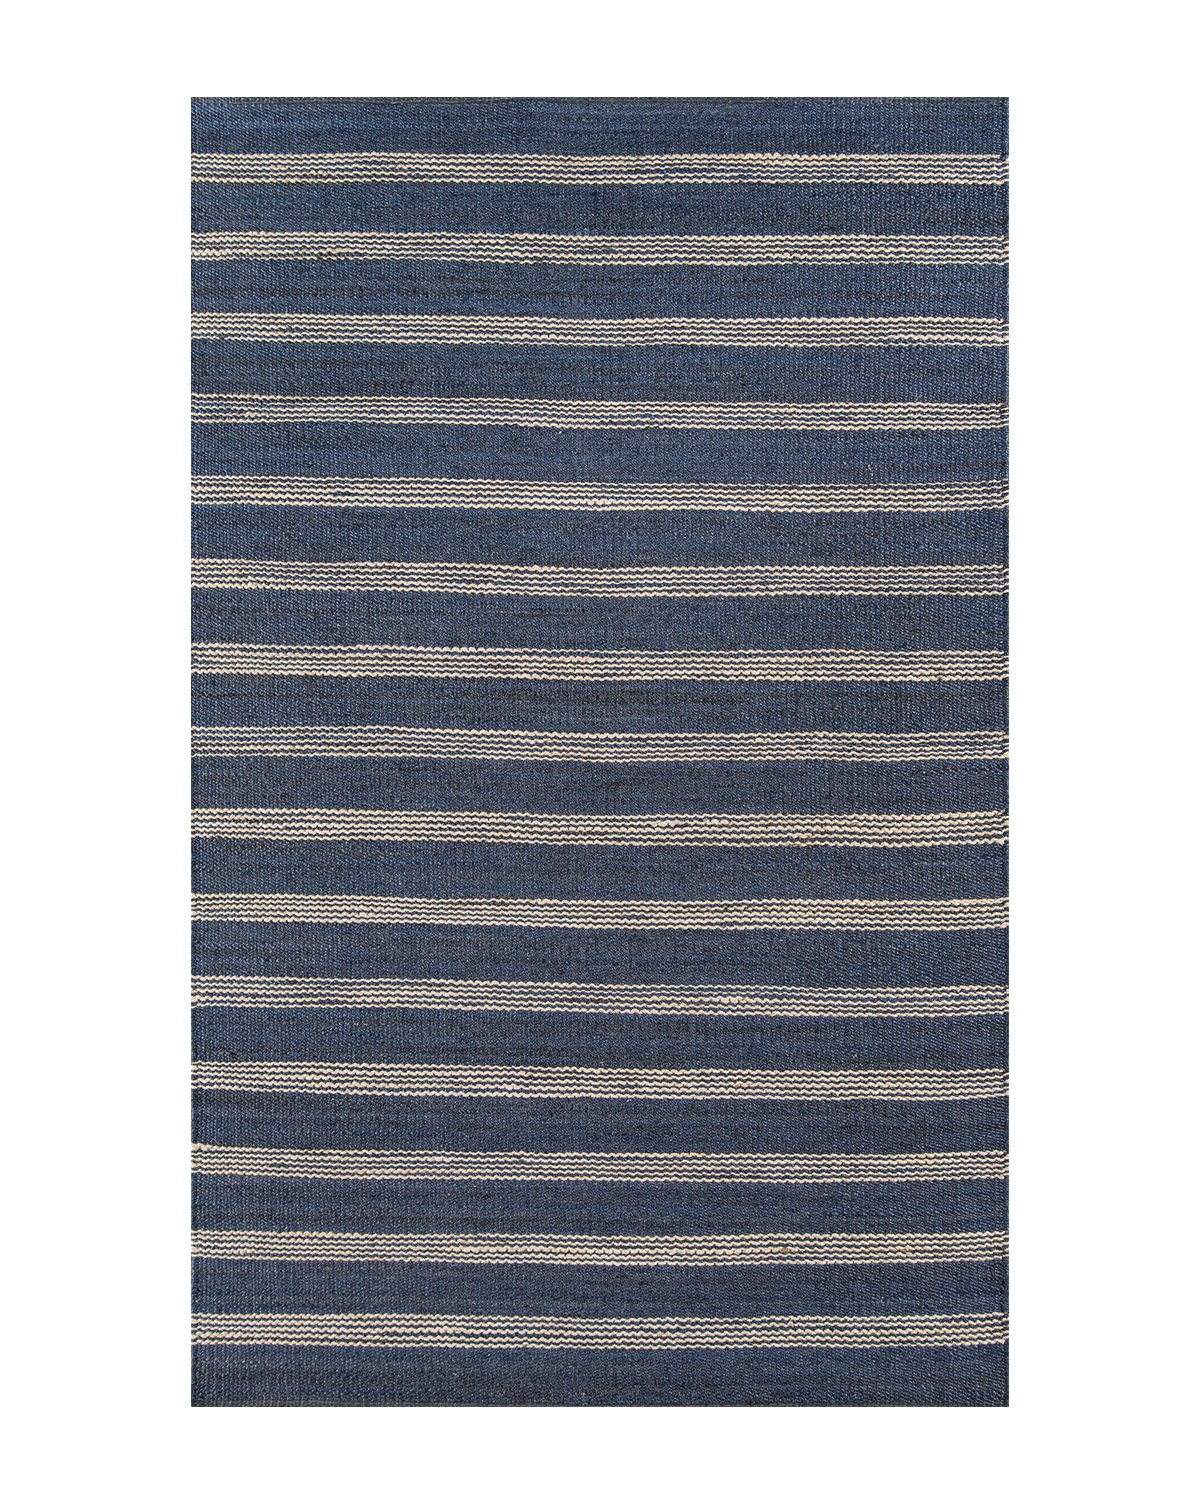 Bunbury_Blue_Rug_1.jpg